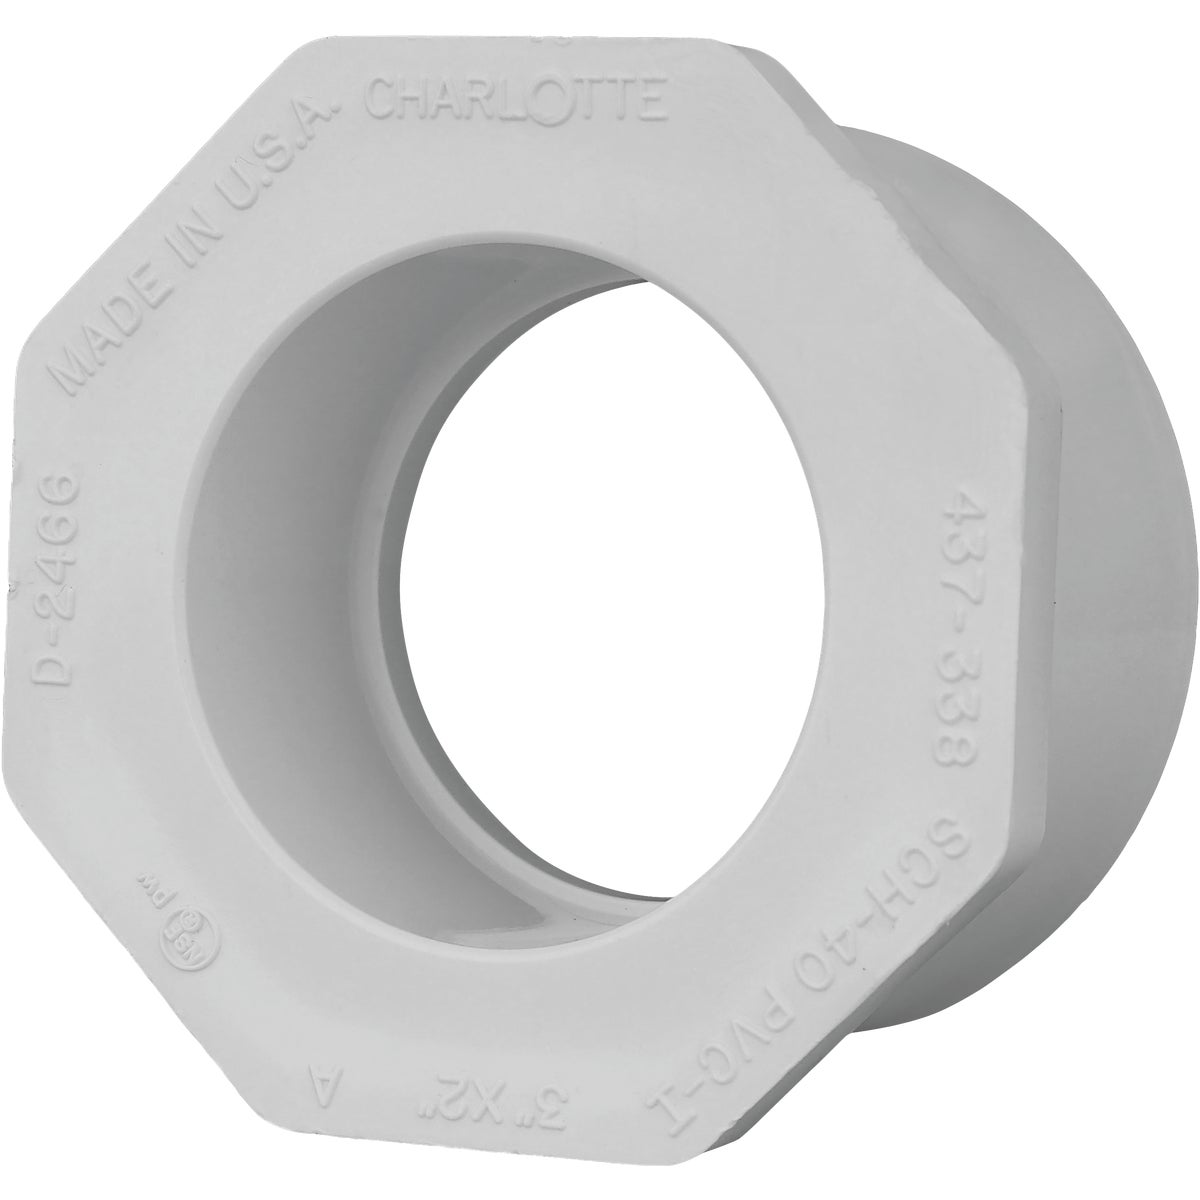 3X2 PVC SPXS BUSHING - 30232 by Genova Inc